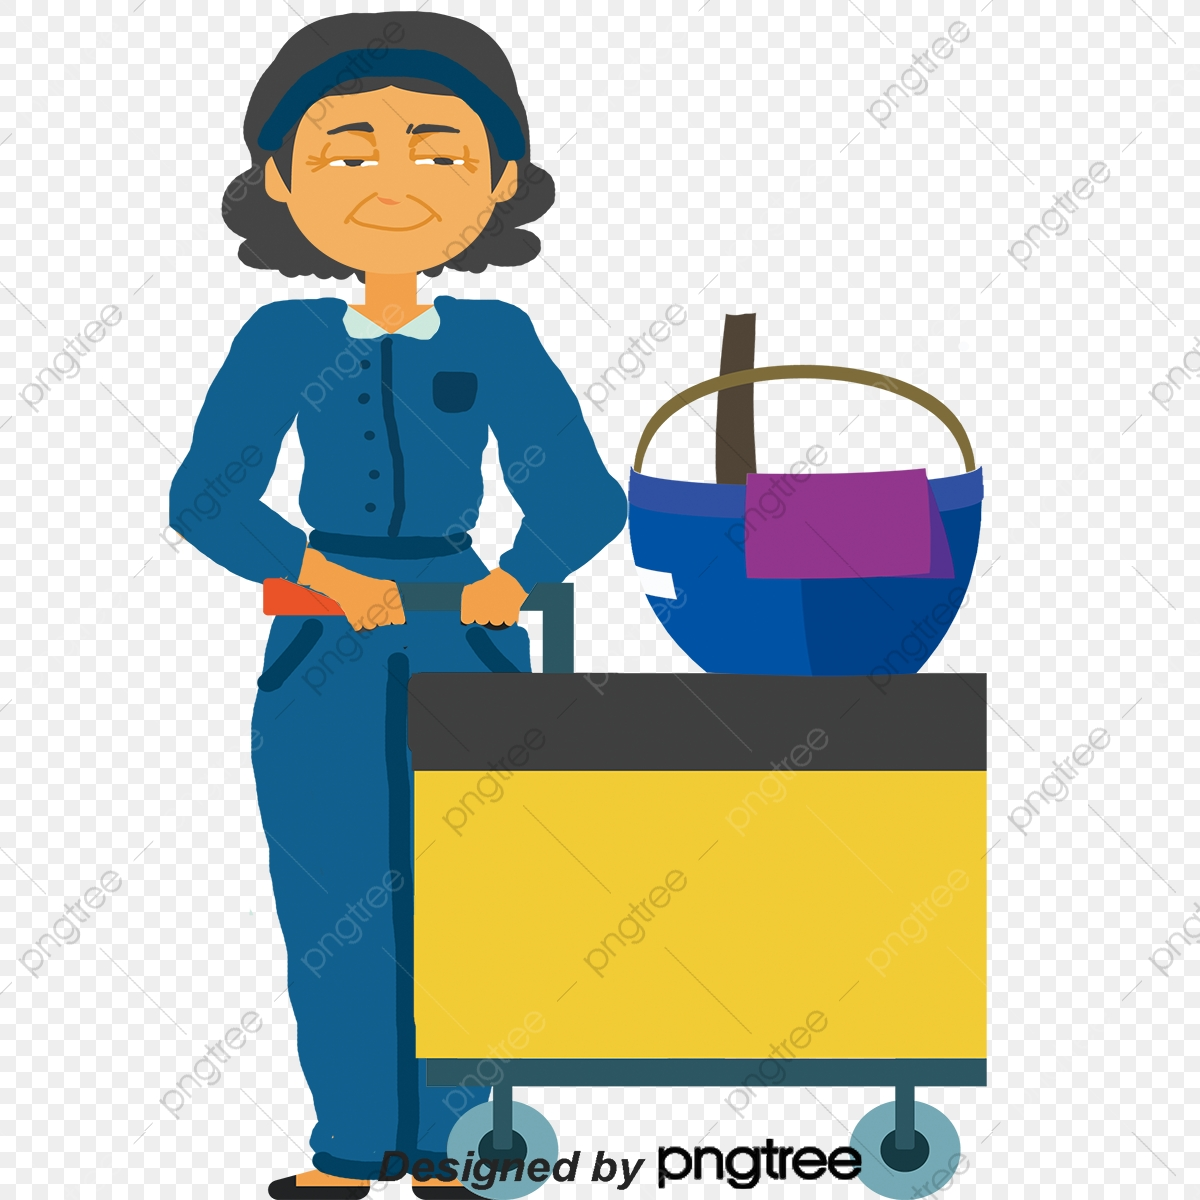 Janitor clipart housekeeping staff. Vector png domestic company